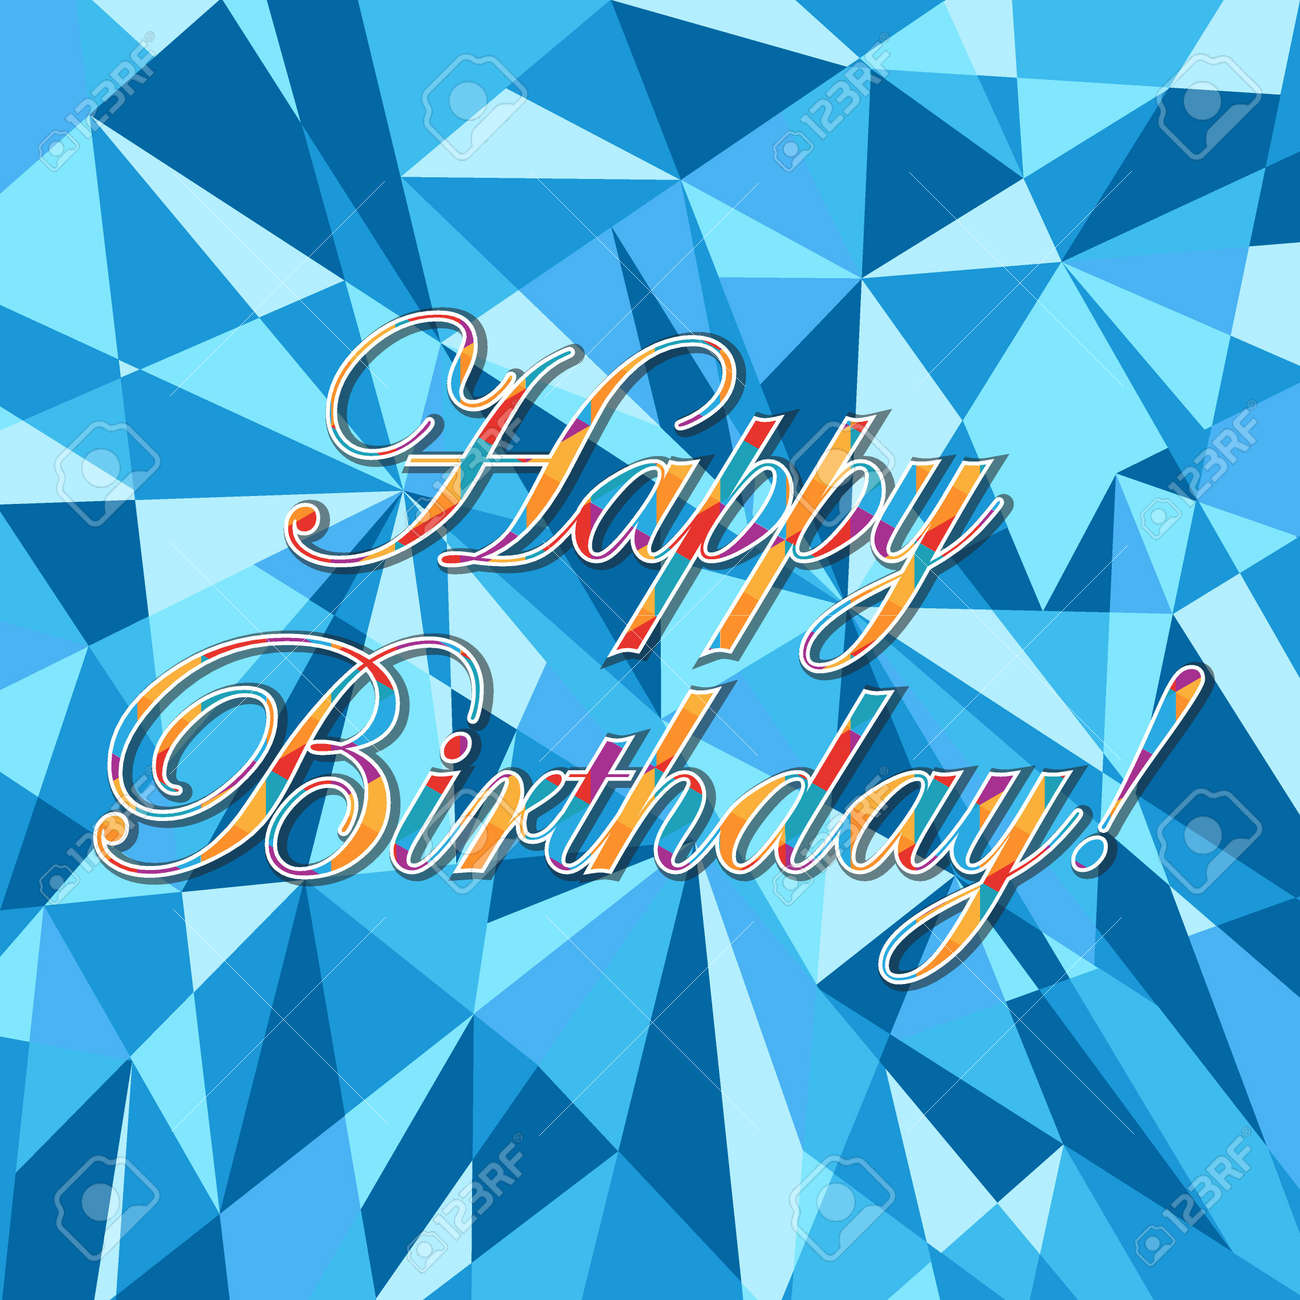 happy birthday abstract blue card pattern illustration design graphic background stock vector 57957535